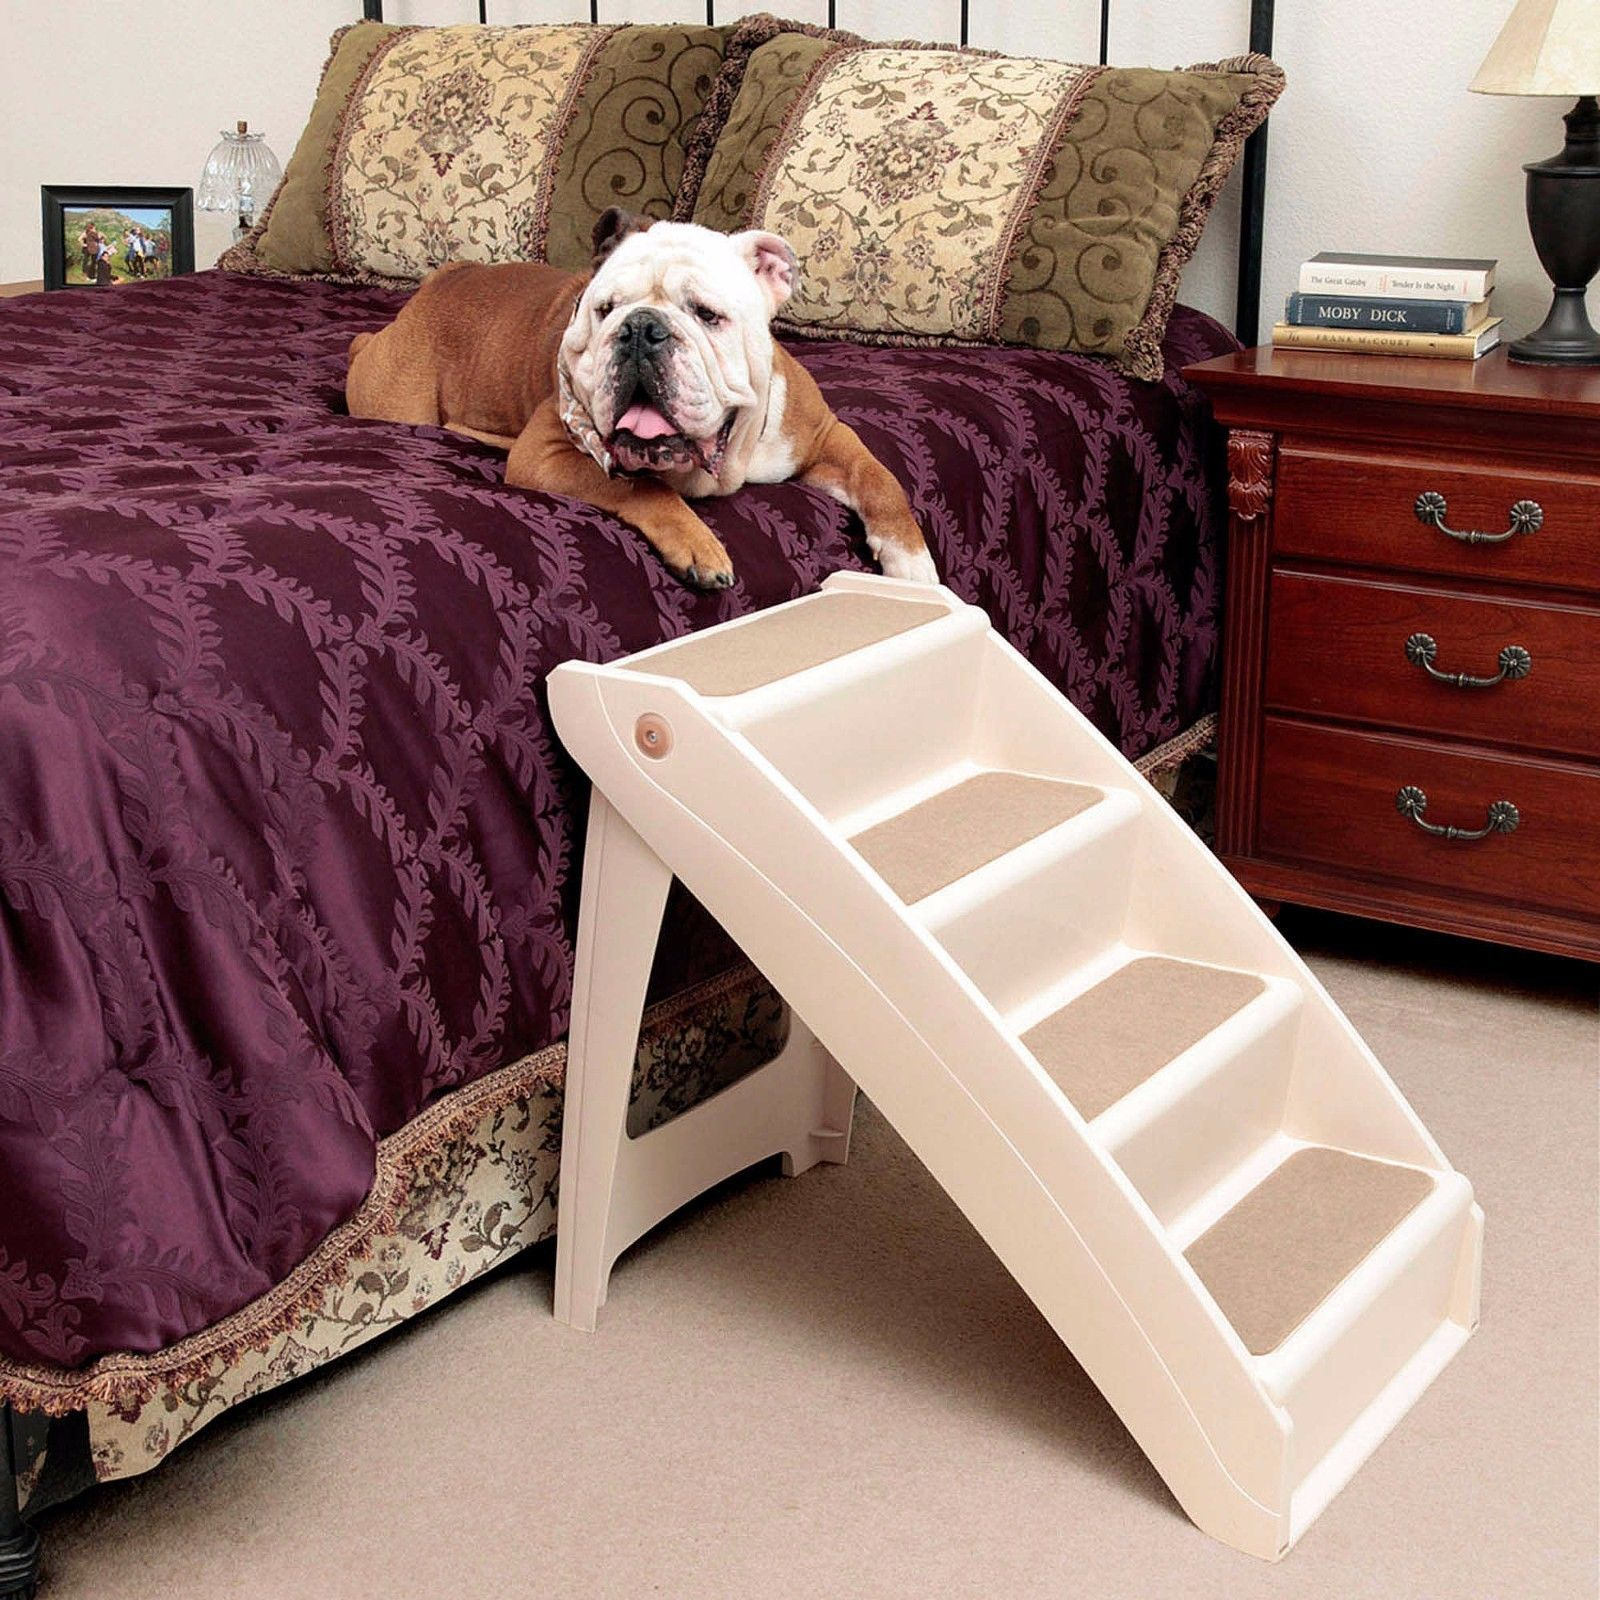 Mobby loft bed with stairs  Dog Bed Ladder  DOG IDEA  Pinterest  Bedding Ladder and Dog beds